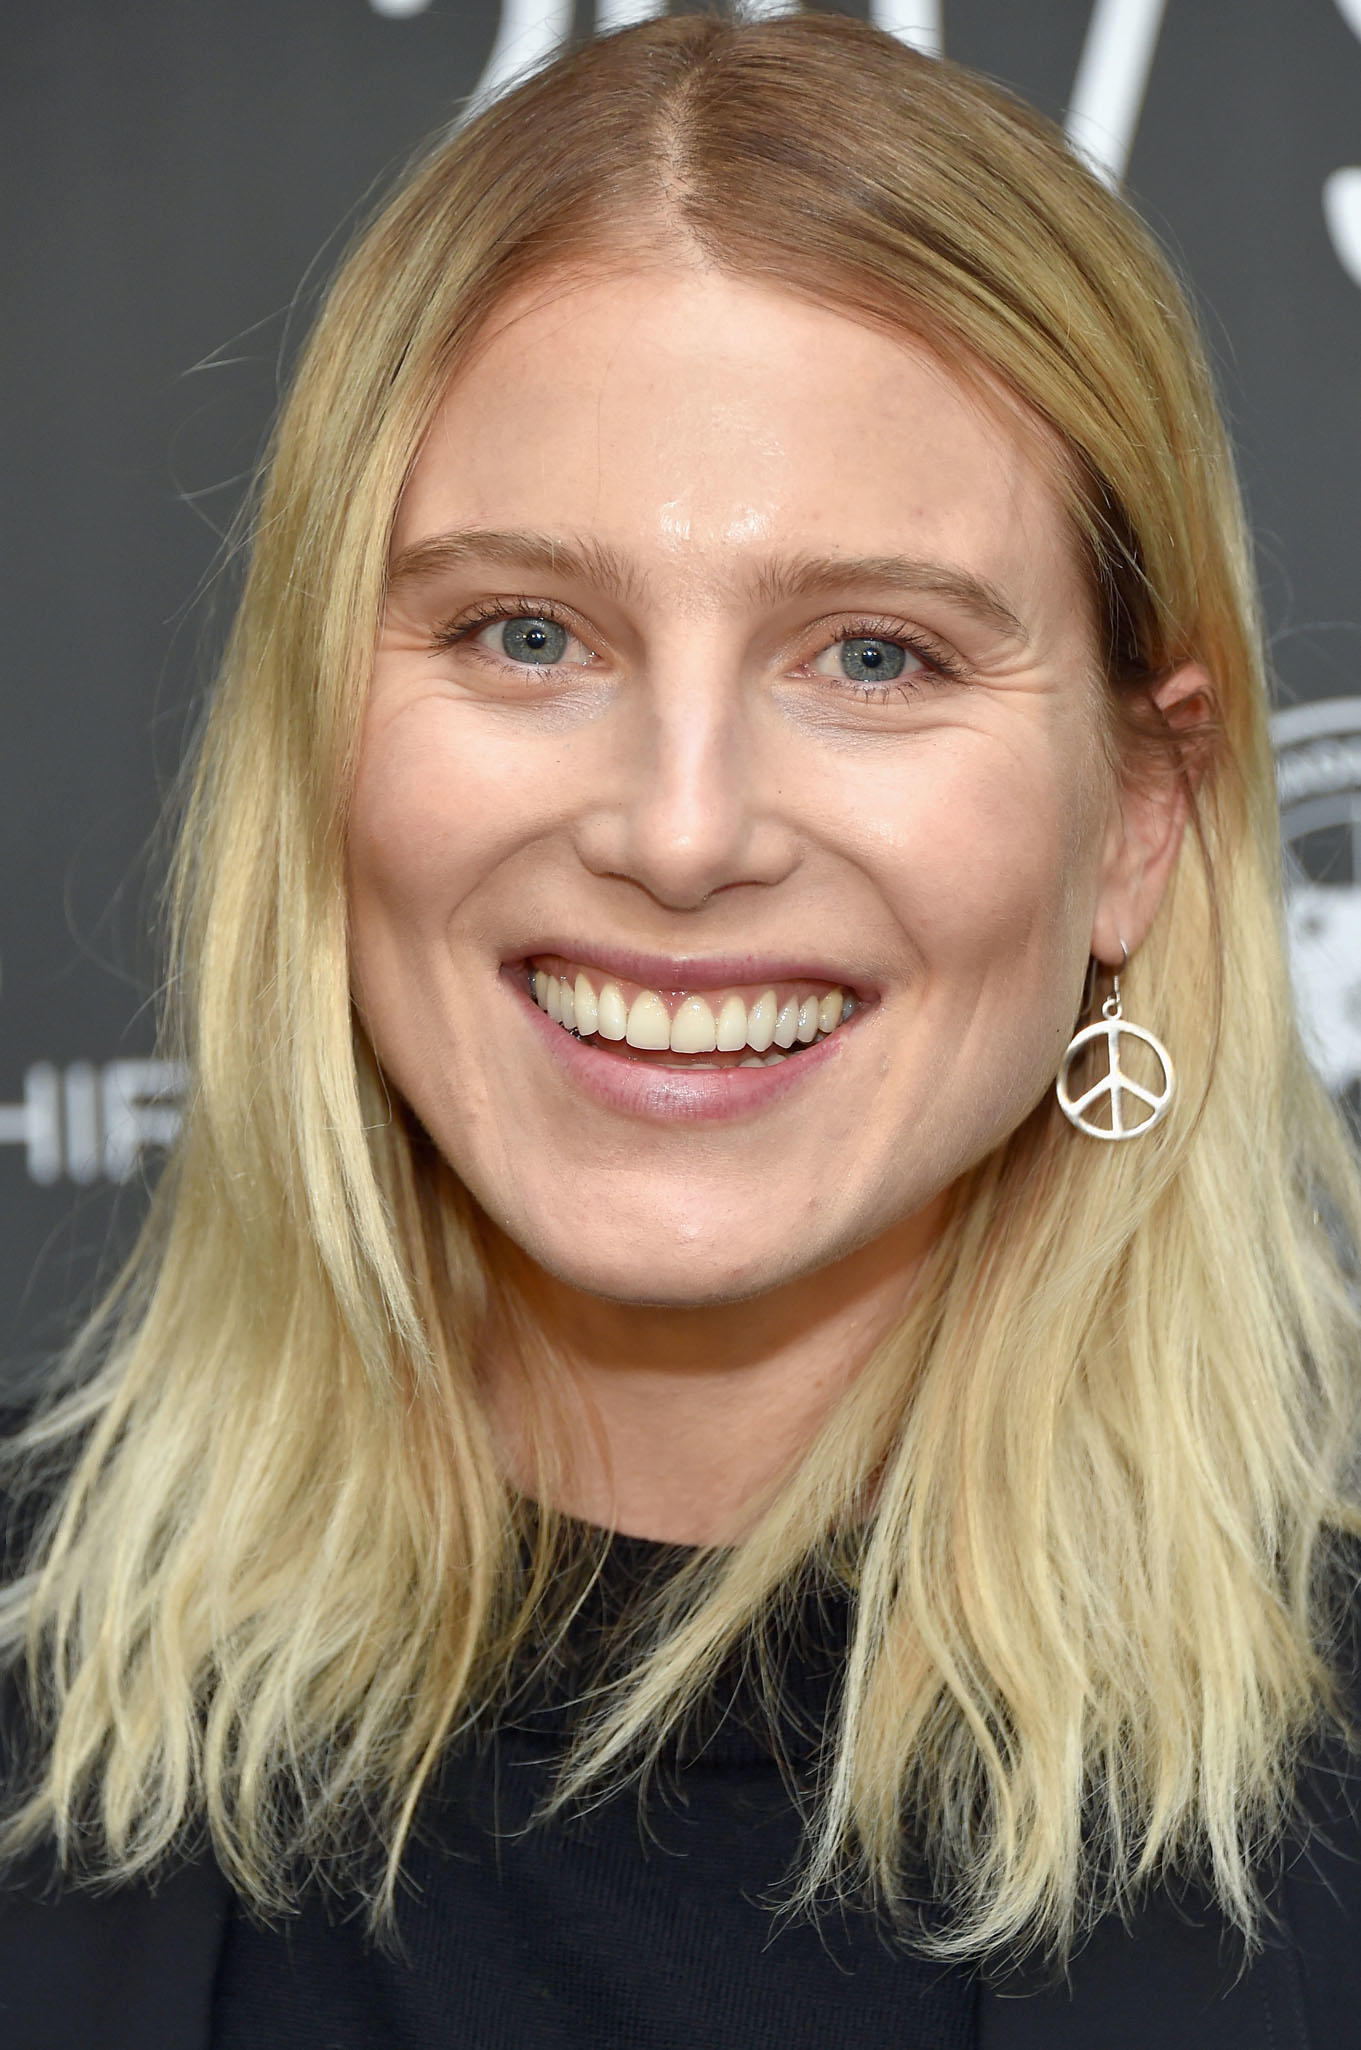 Images Dree Hemingway naked (99 photos), Cleavage